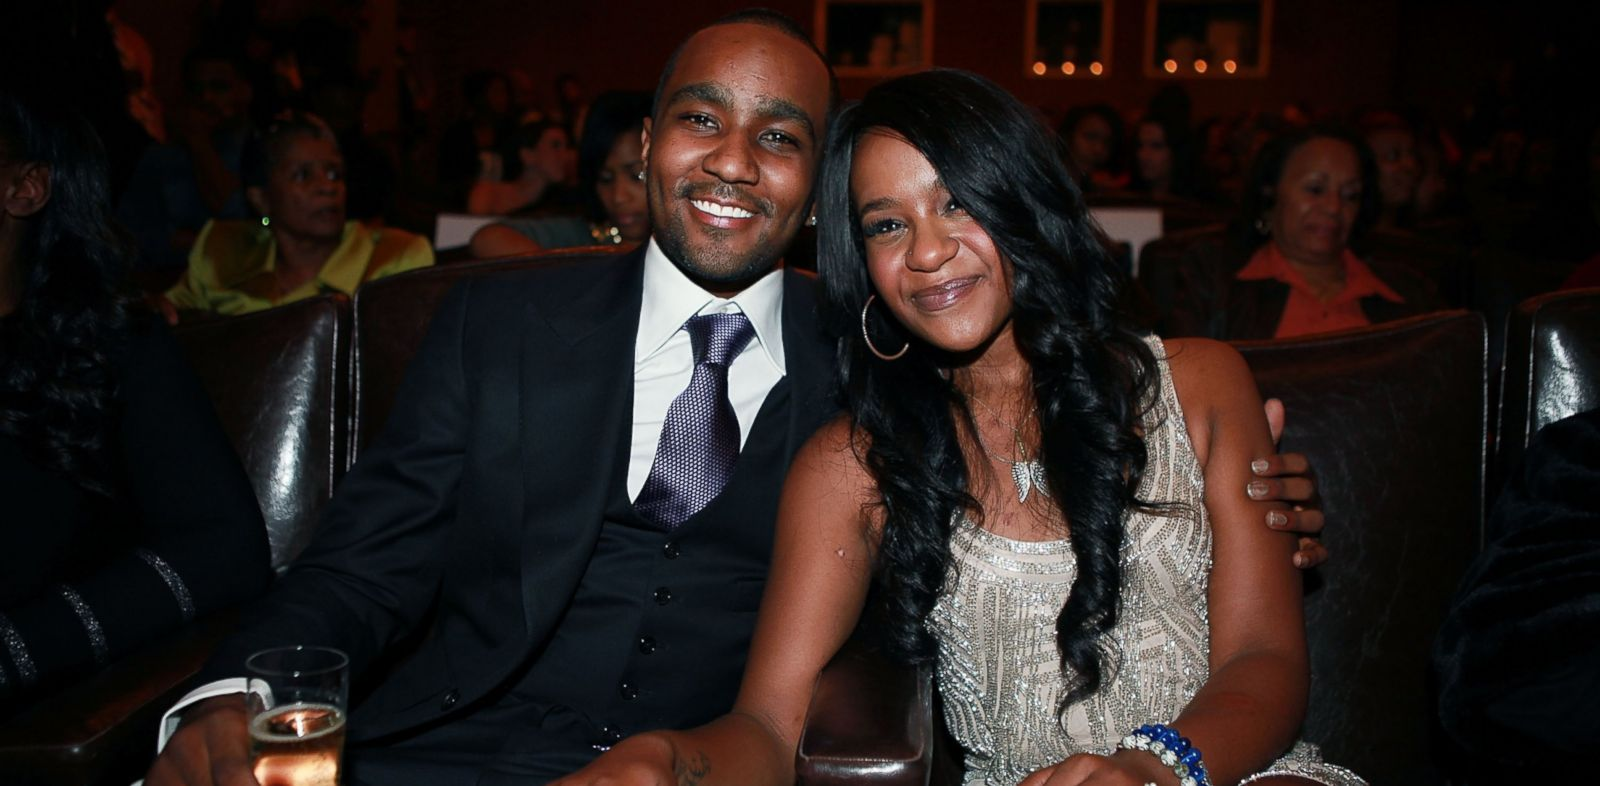 """PHOTO: In this file photo, Nick Gordon, left, and Bobbi Kristina Brown, right, attend """"The Houstons: On Our Own"""" series premiere party on Oct. 22, 2012 in New York City."""